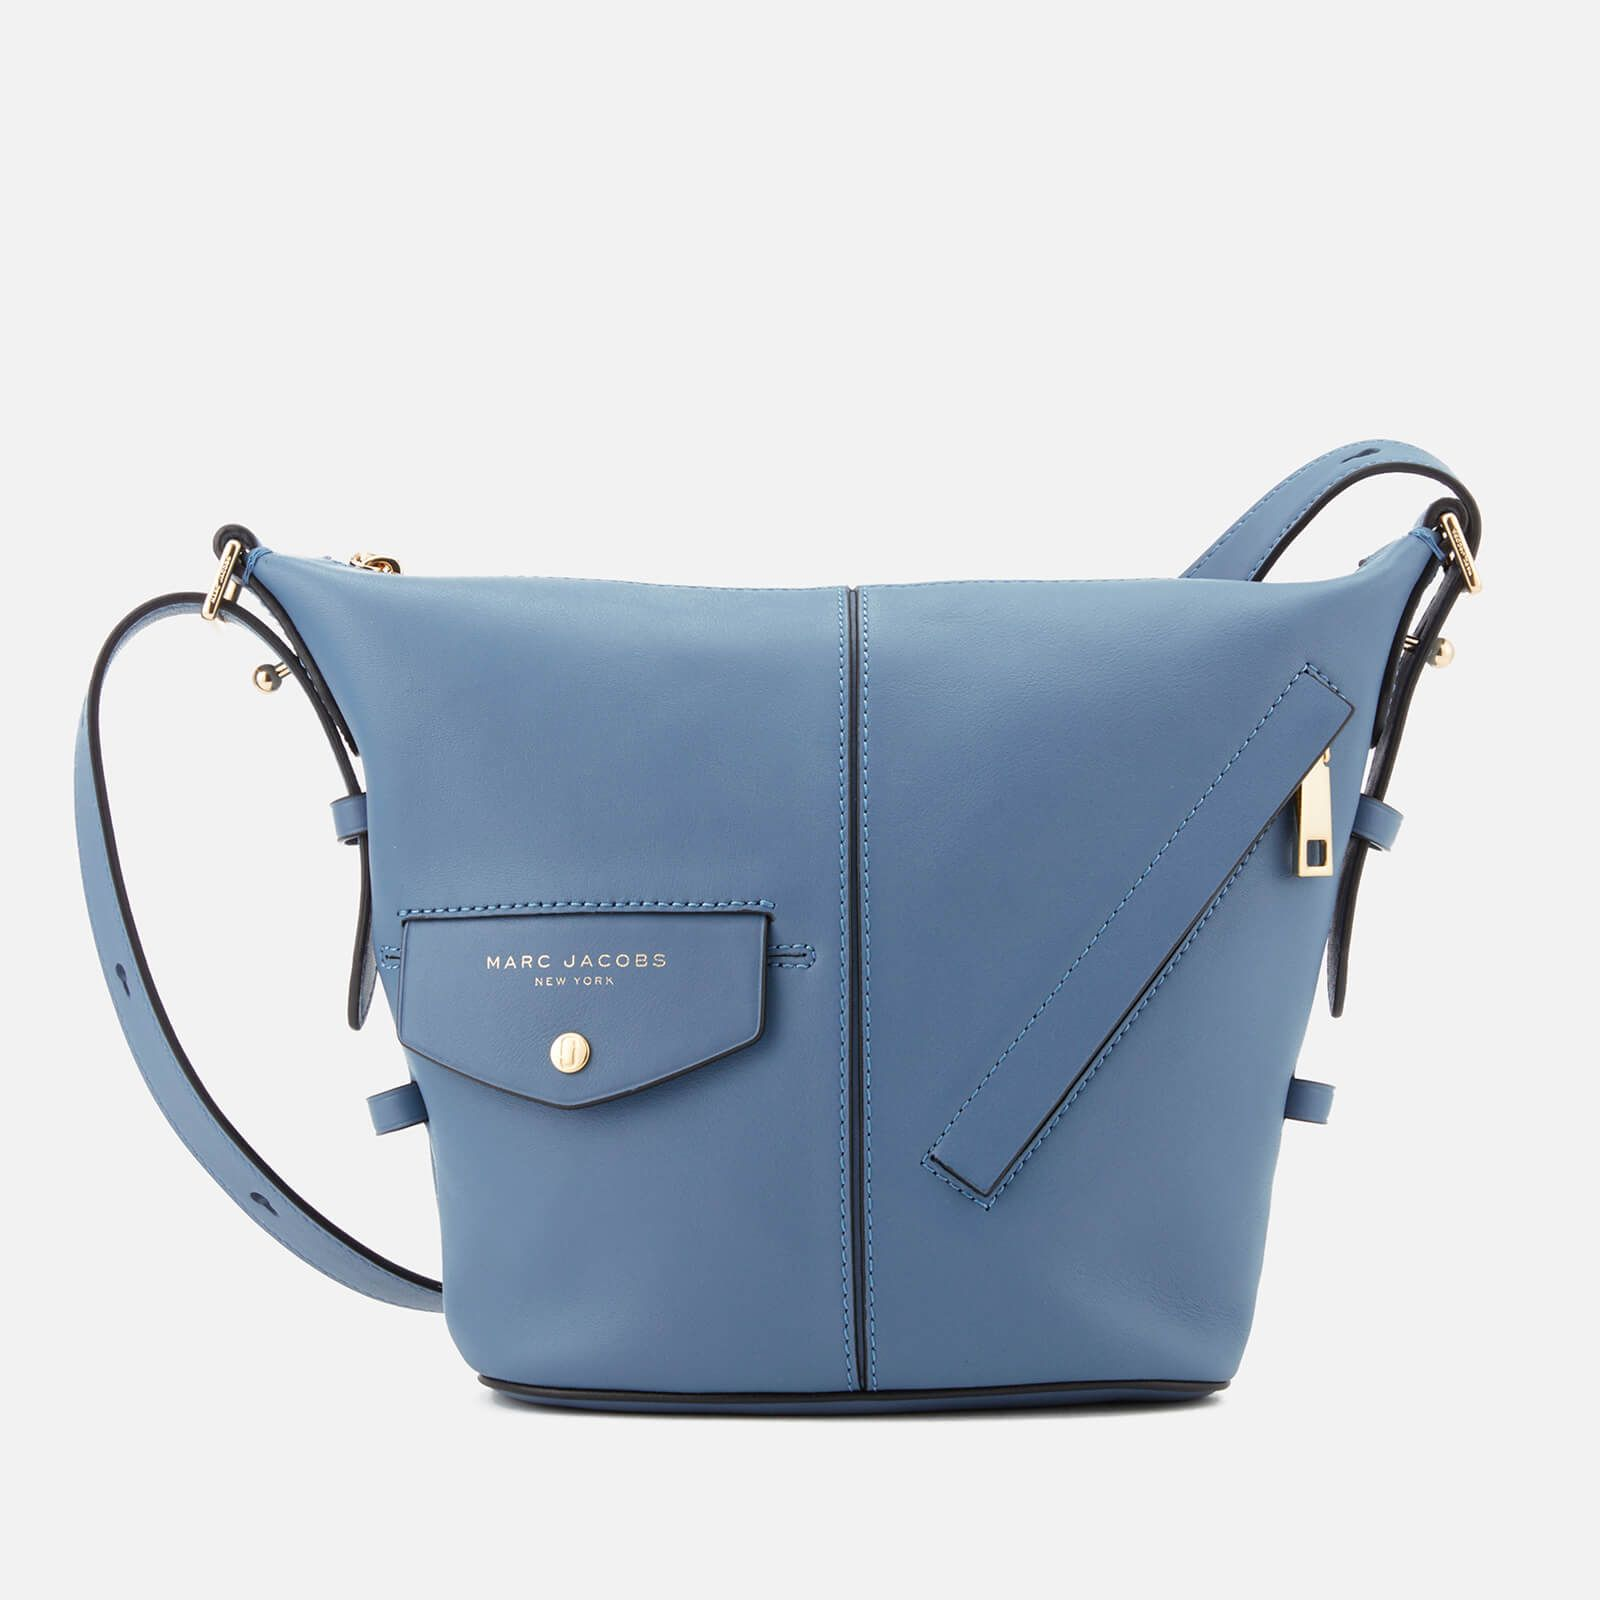 2197ac3dff7f9 Marc Jacobs Women s The Mini Sling Cross Body Bag - Vintage Blue Womens  Accessories - Free UK Delivery over £50